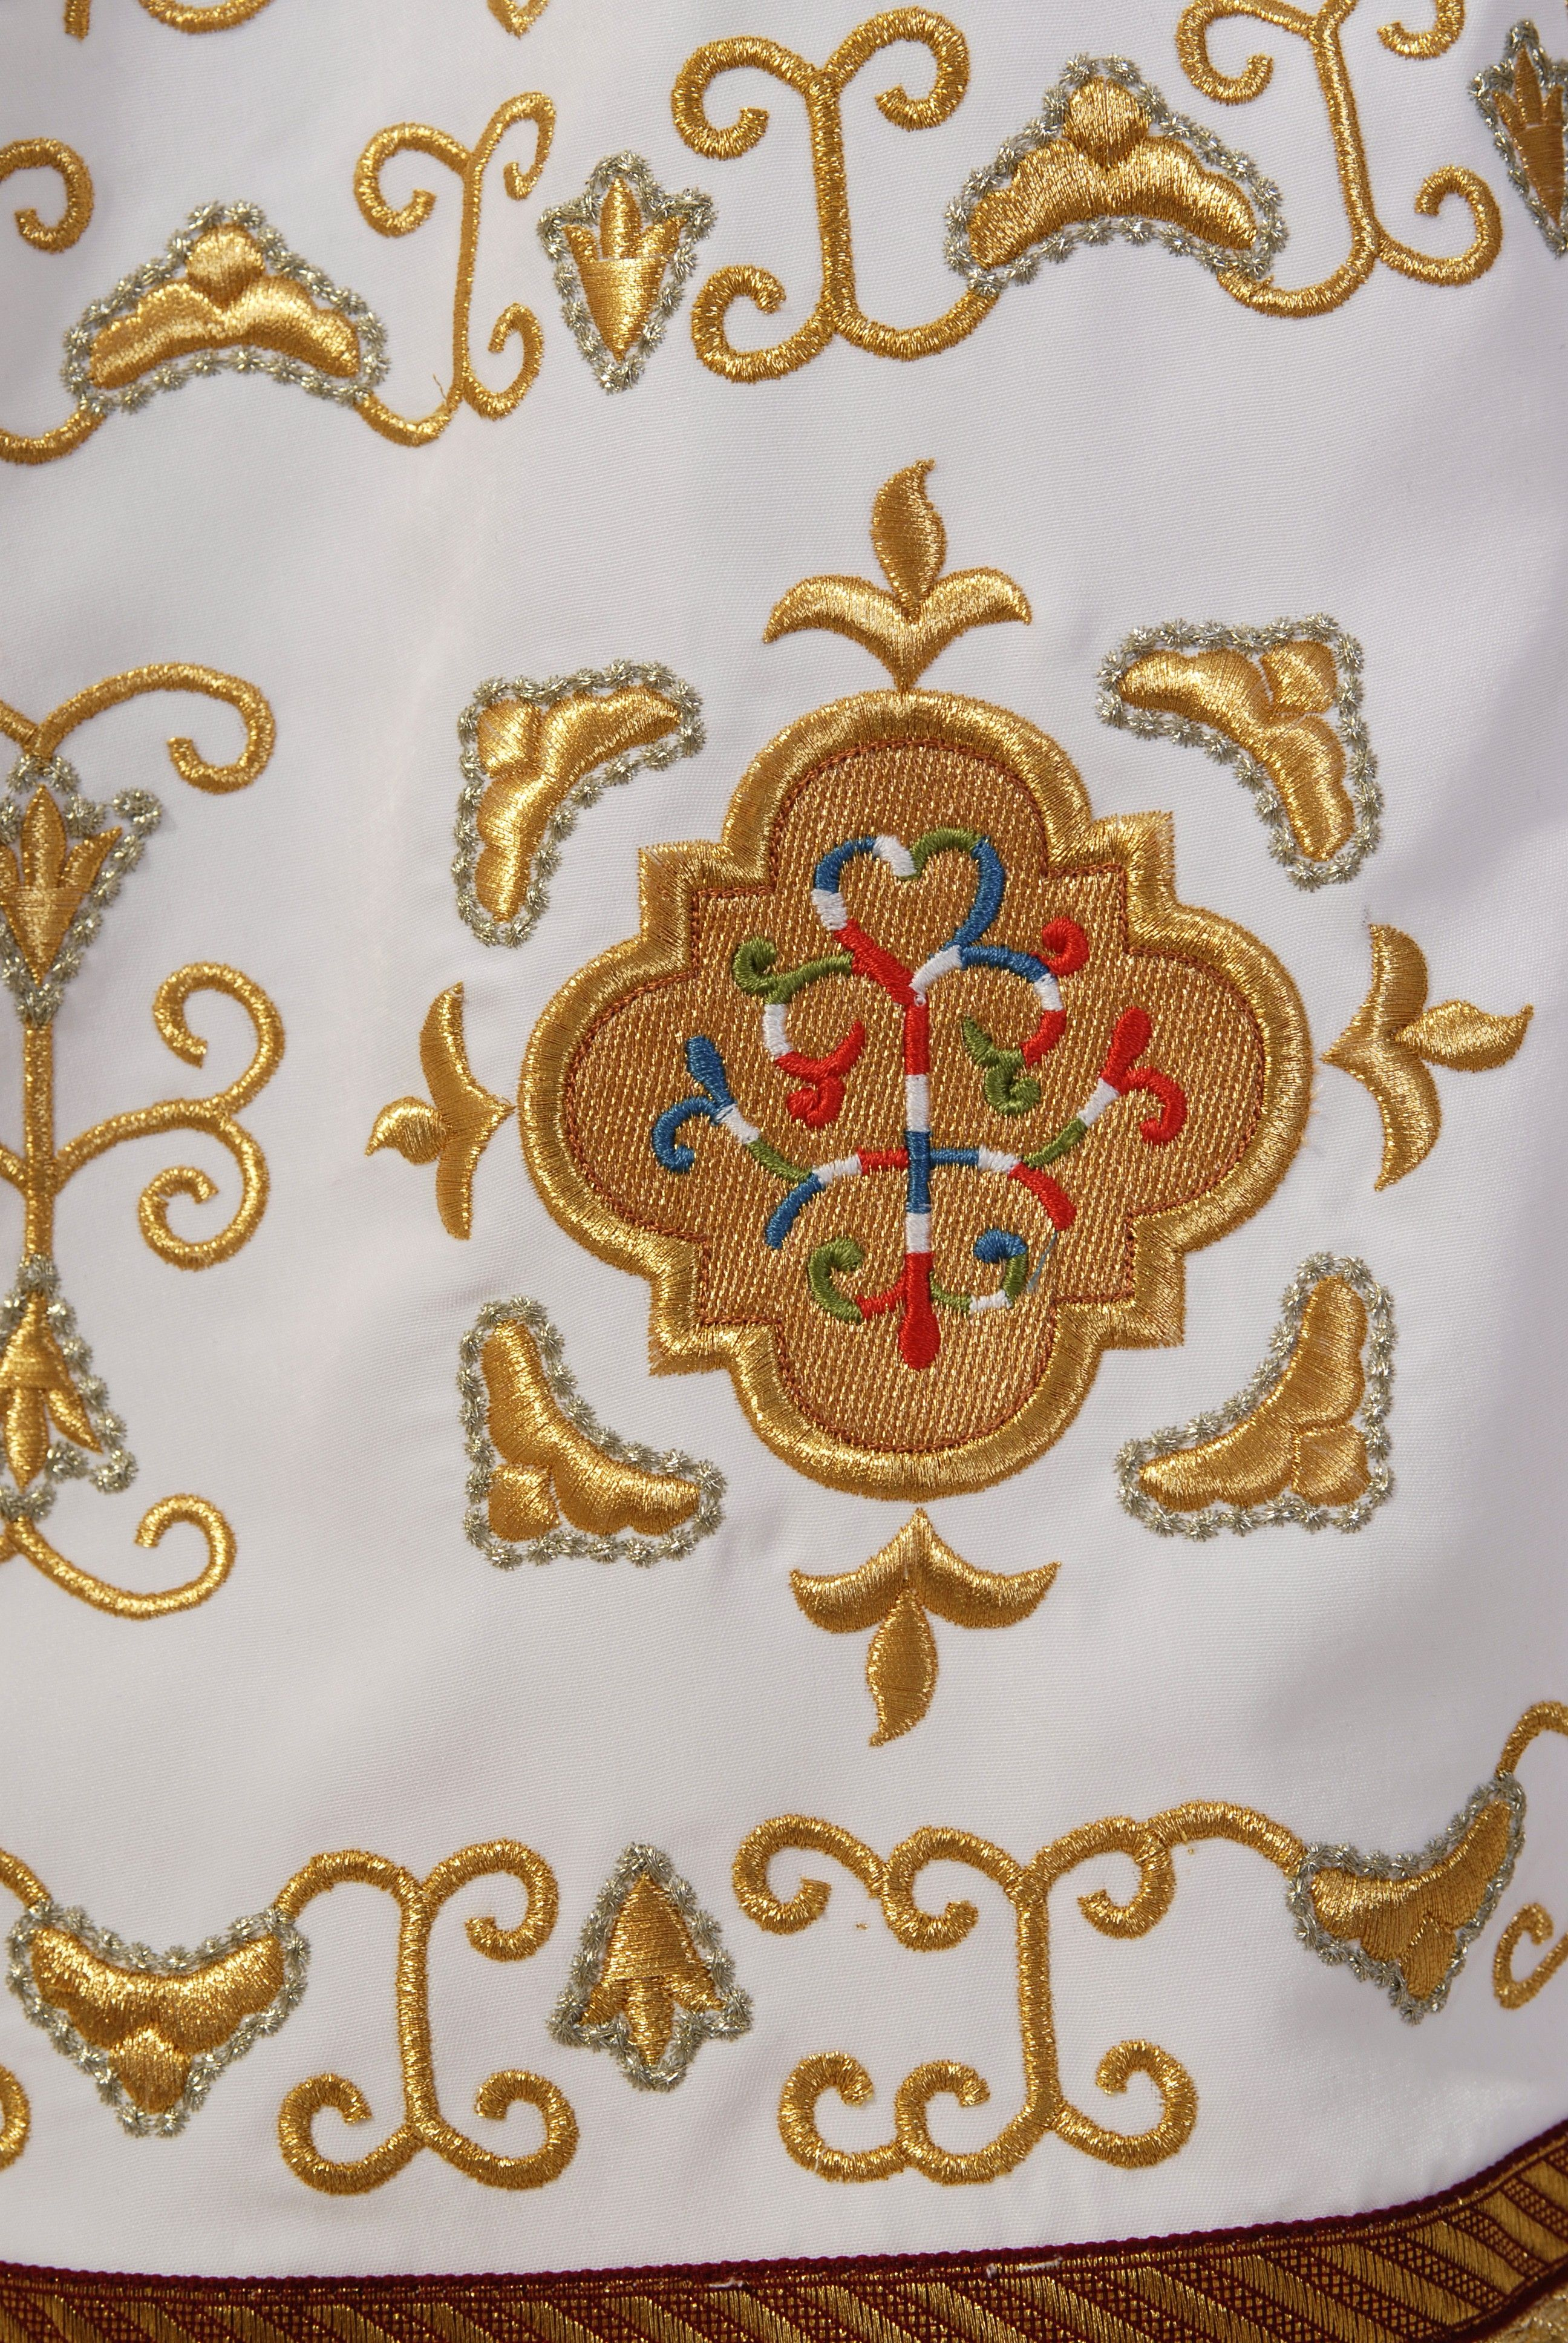 #CatalogofGoodDeed #Priest #Sticharion #white #gold #embroidery #sewing  #polyviscose #church #orthodox #details #goldwork #cross #handmade